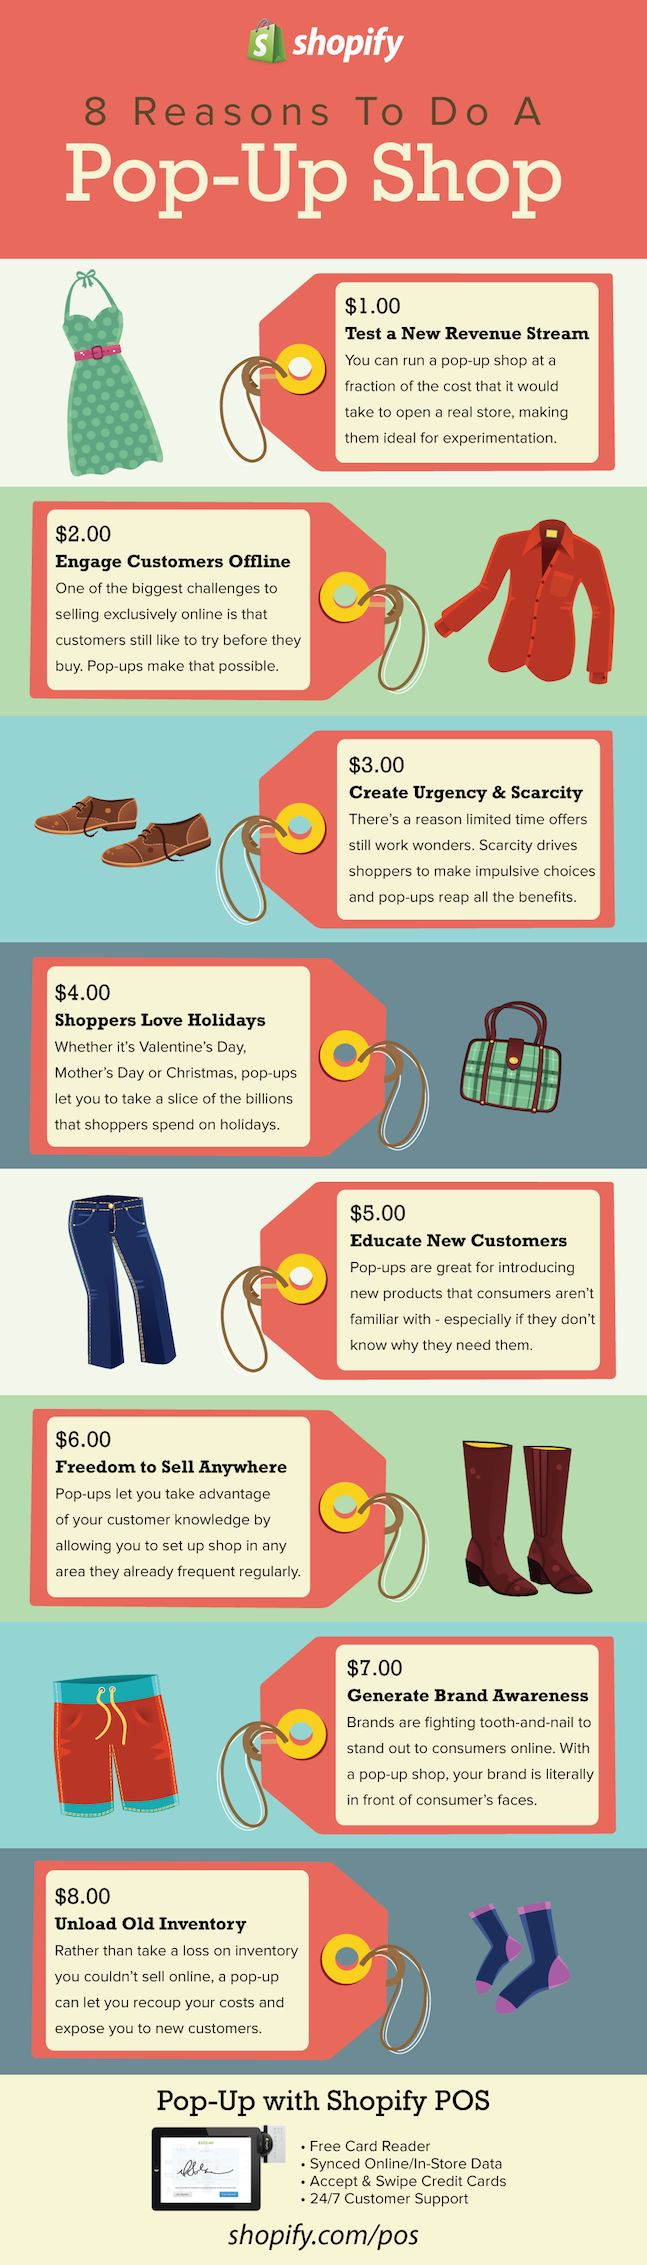 8 Reasons To Do A Pop-Up Shop #infographic #Shopify #onlinebusinessopportunity